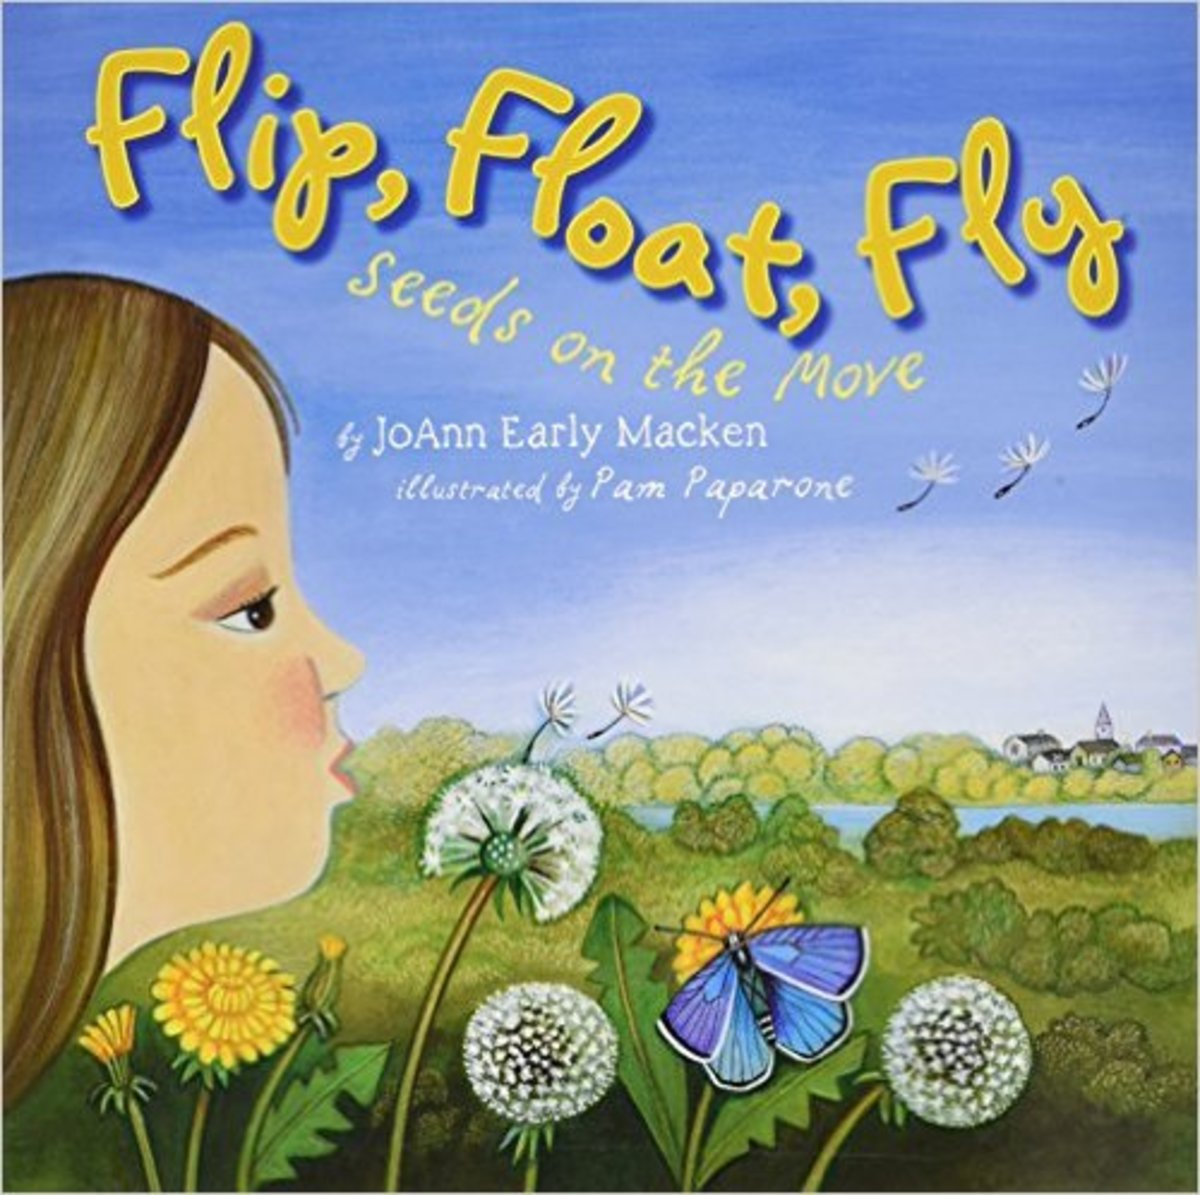 Flip, Float, Fly: Seeds on the Move by JoAnn Early Macken